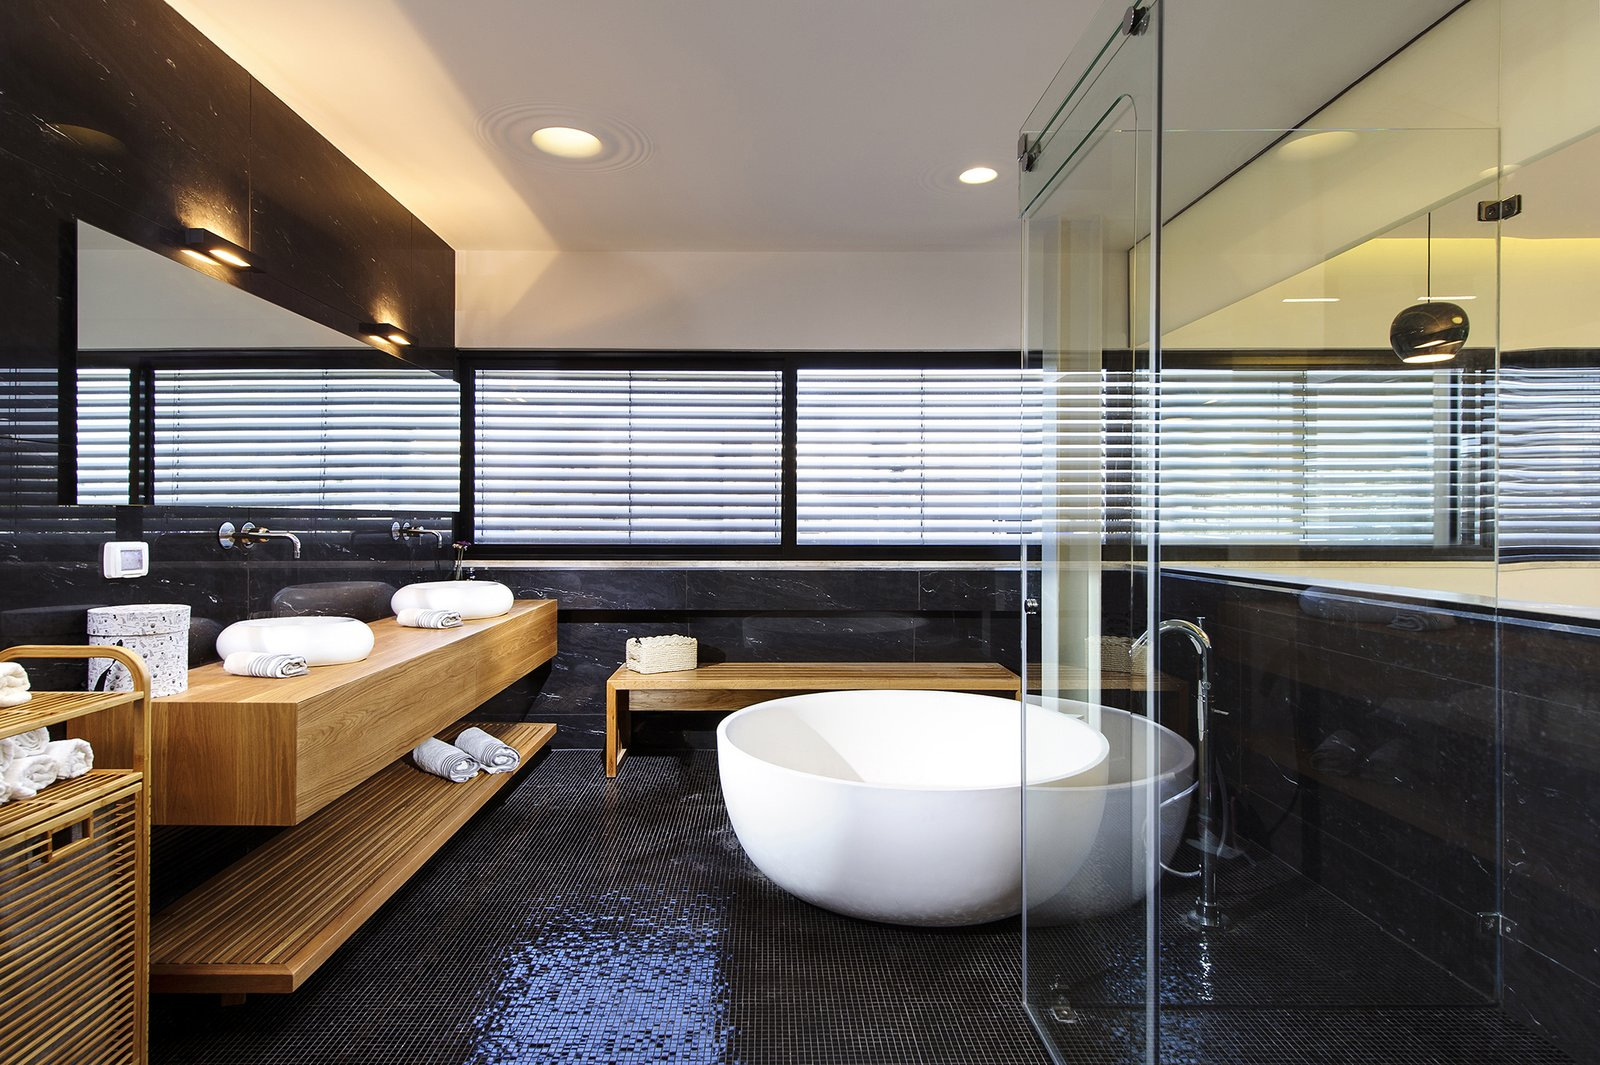 The sleek master bathroom features a freestanding tub, black mosaic tiles on the floor, and black natural stone on the walls. A natural oak vanity and oak accents add warmth to the otherwise cool and contemporary space, and a glass wall on the opposite side creates a sense of connection with the master bedroom.  Bathroom from Rishon Le Zion 3